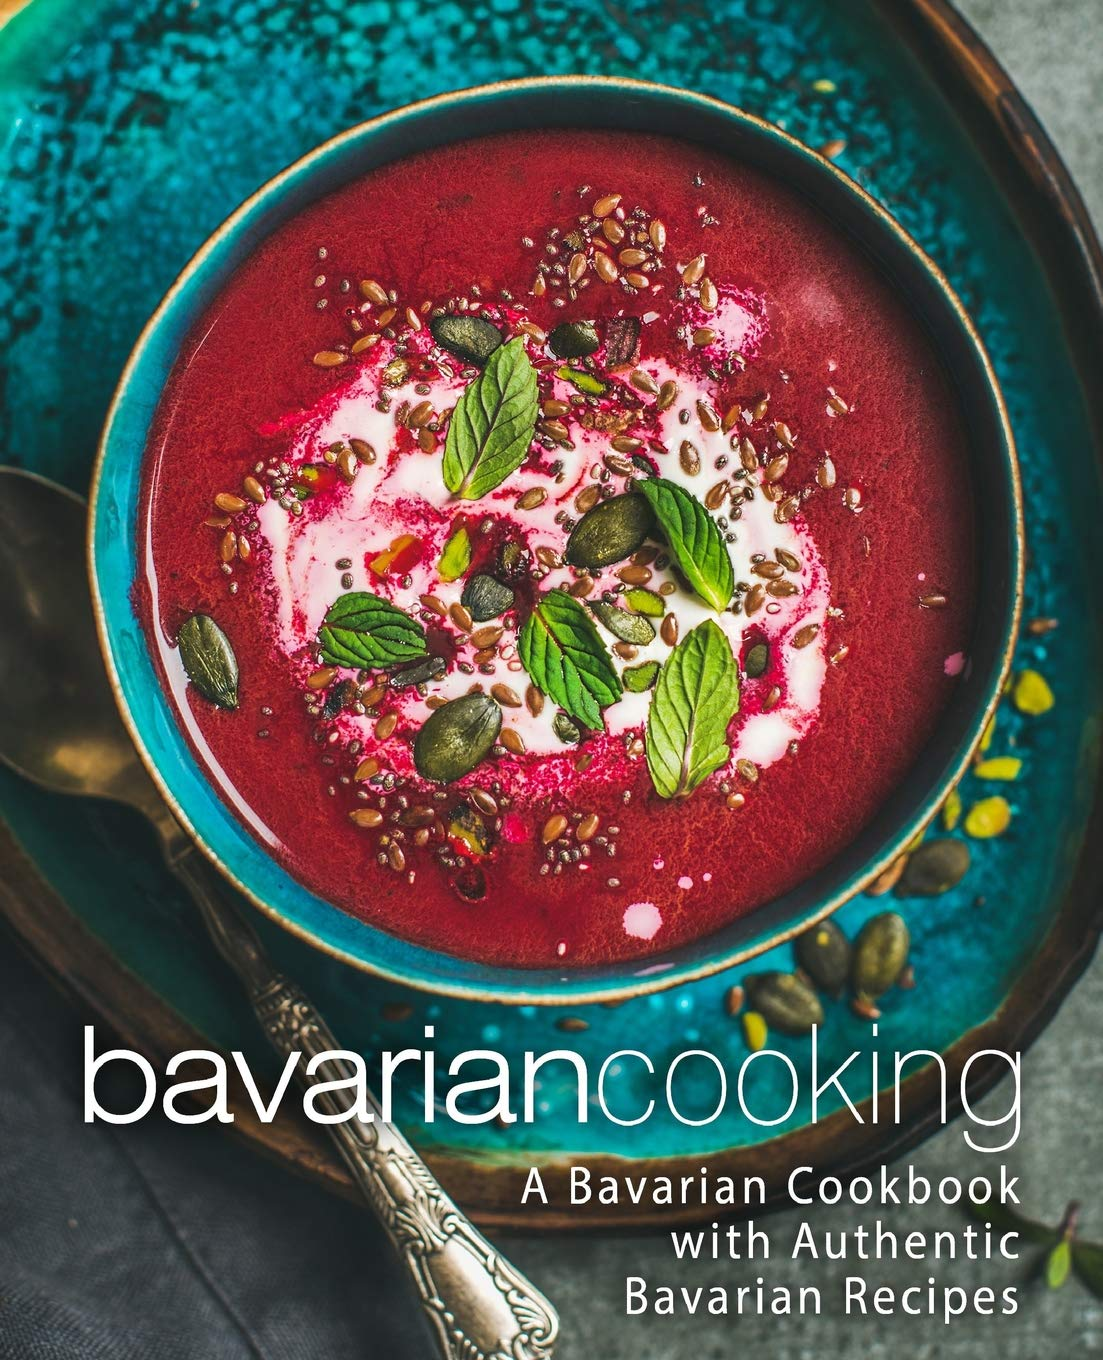 Bavarian Cooking  A Bavarian Cookbook With Authentic Bavarian Recipes